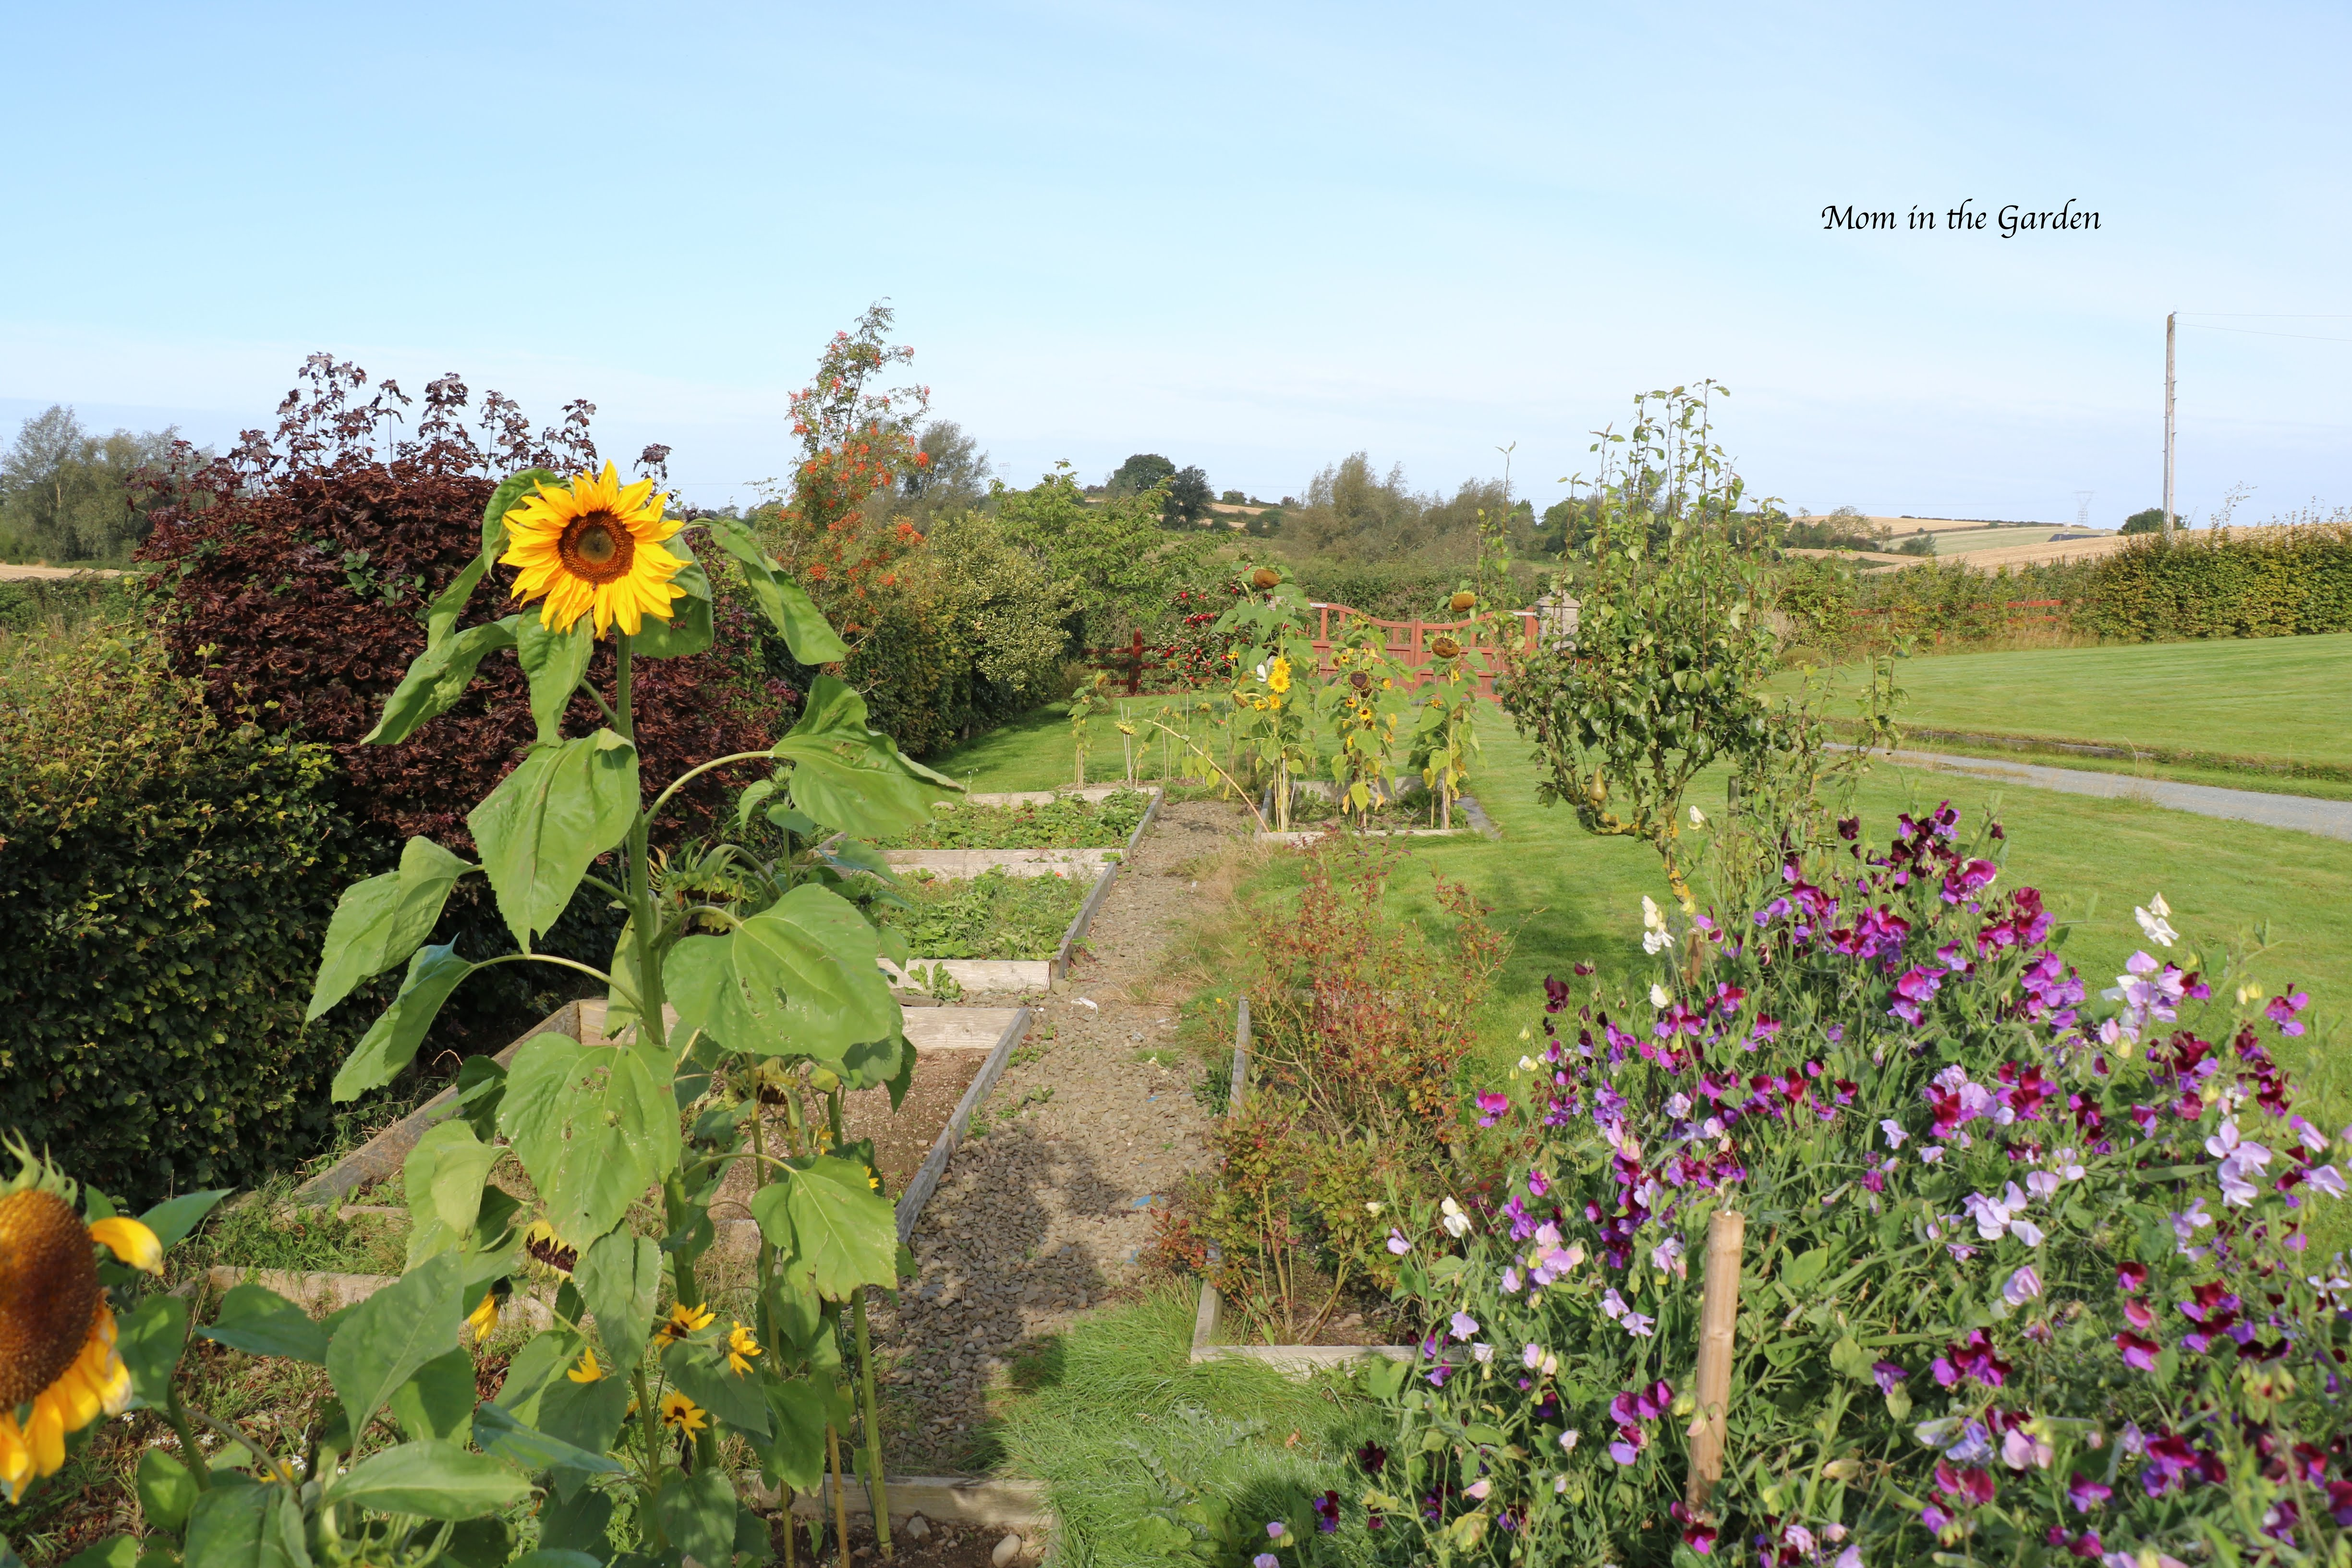 Ladder view of sunflowers + sweet pea + apples Sept 10